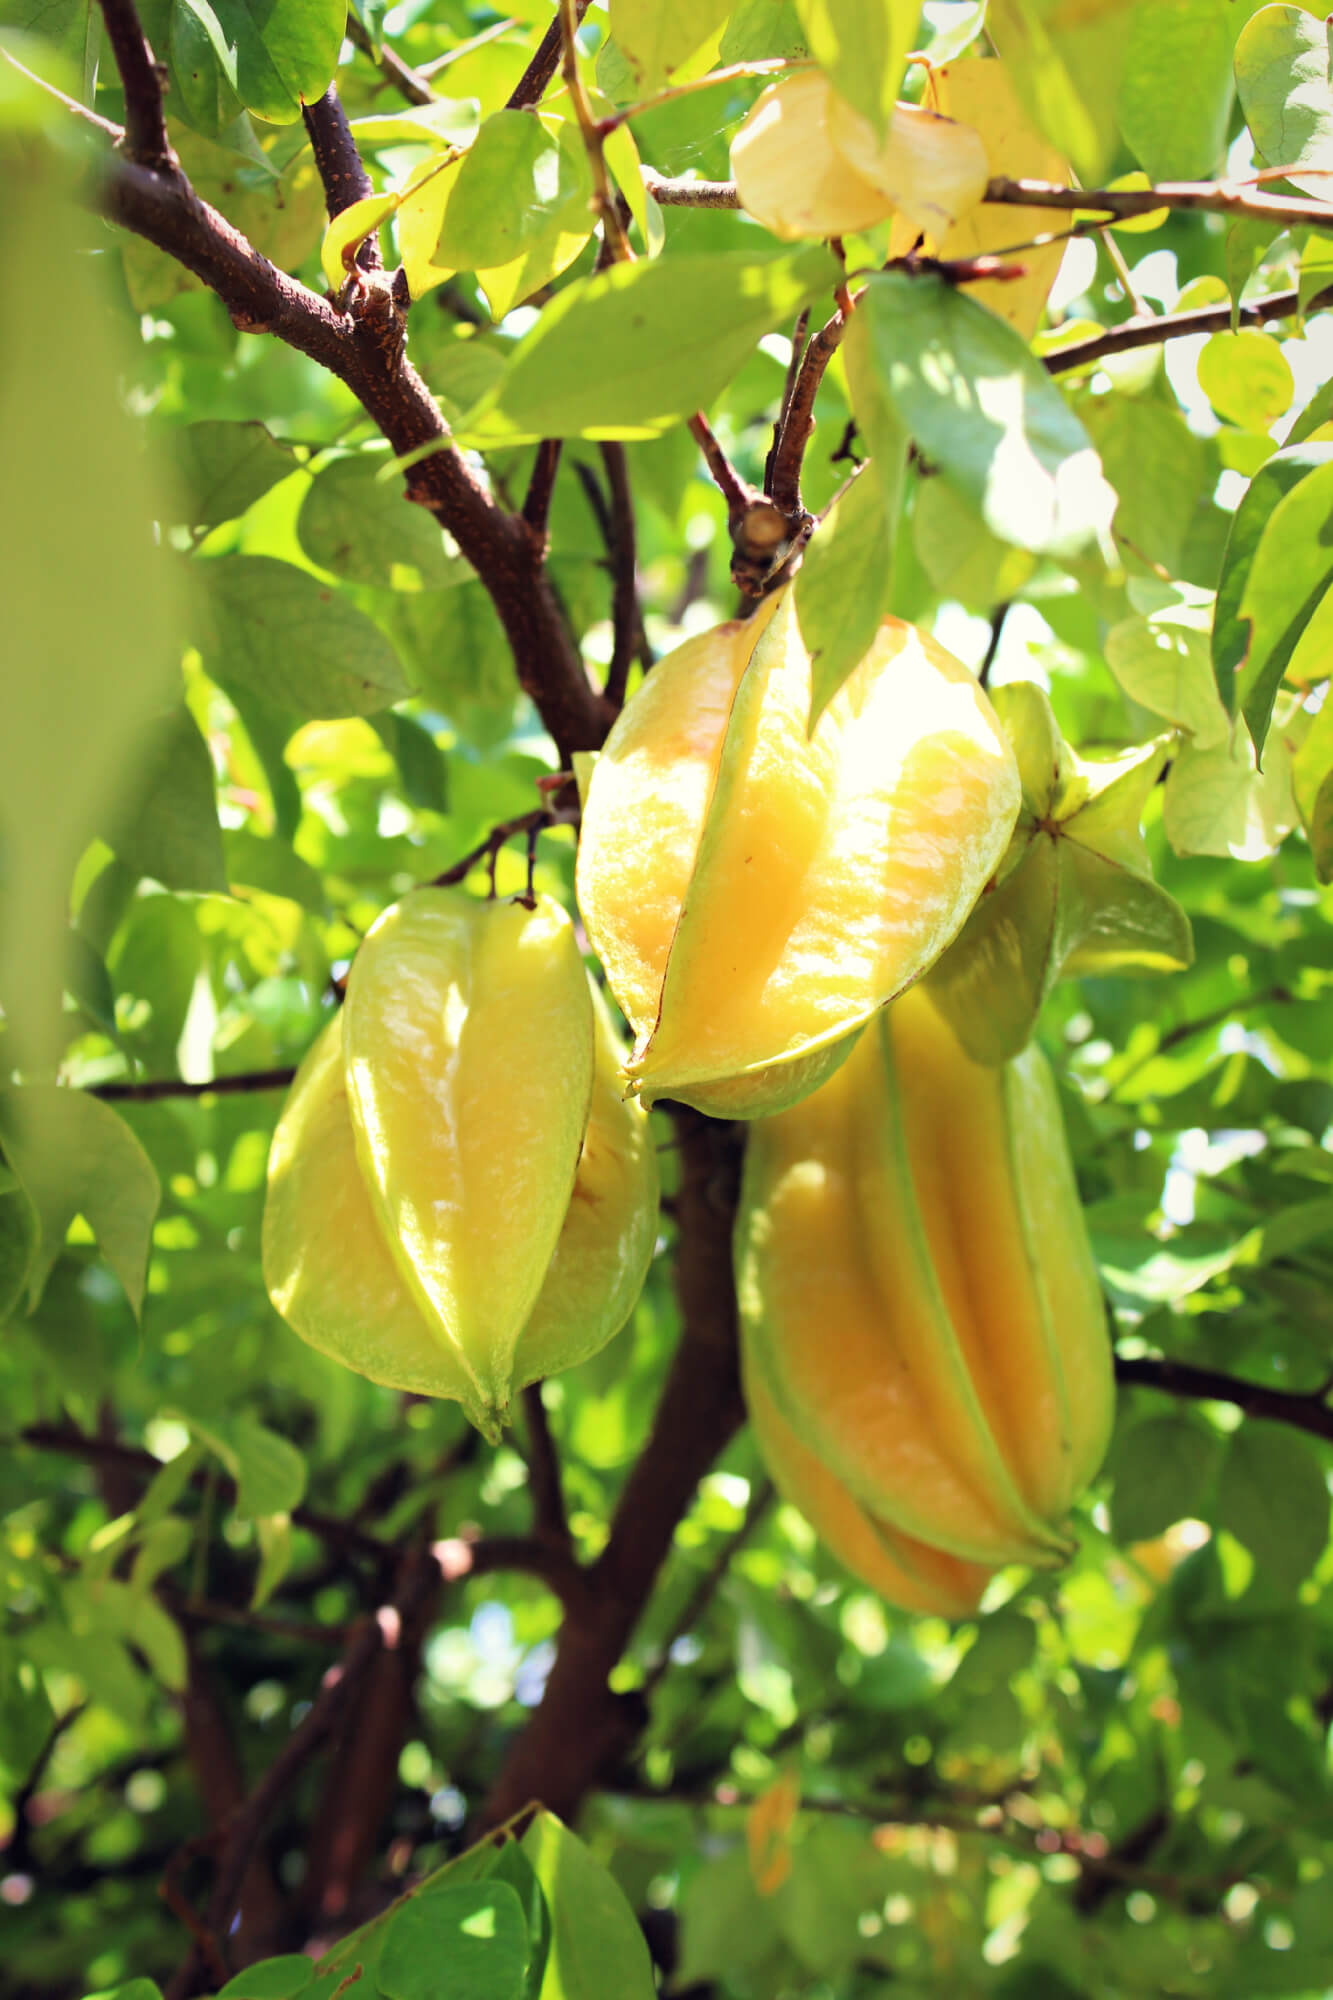 Star Fruit at Palma Sola Botanical